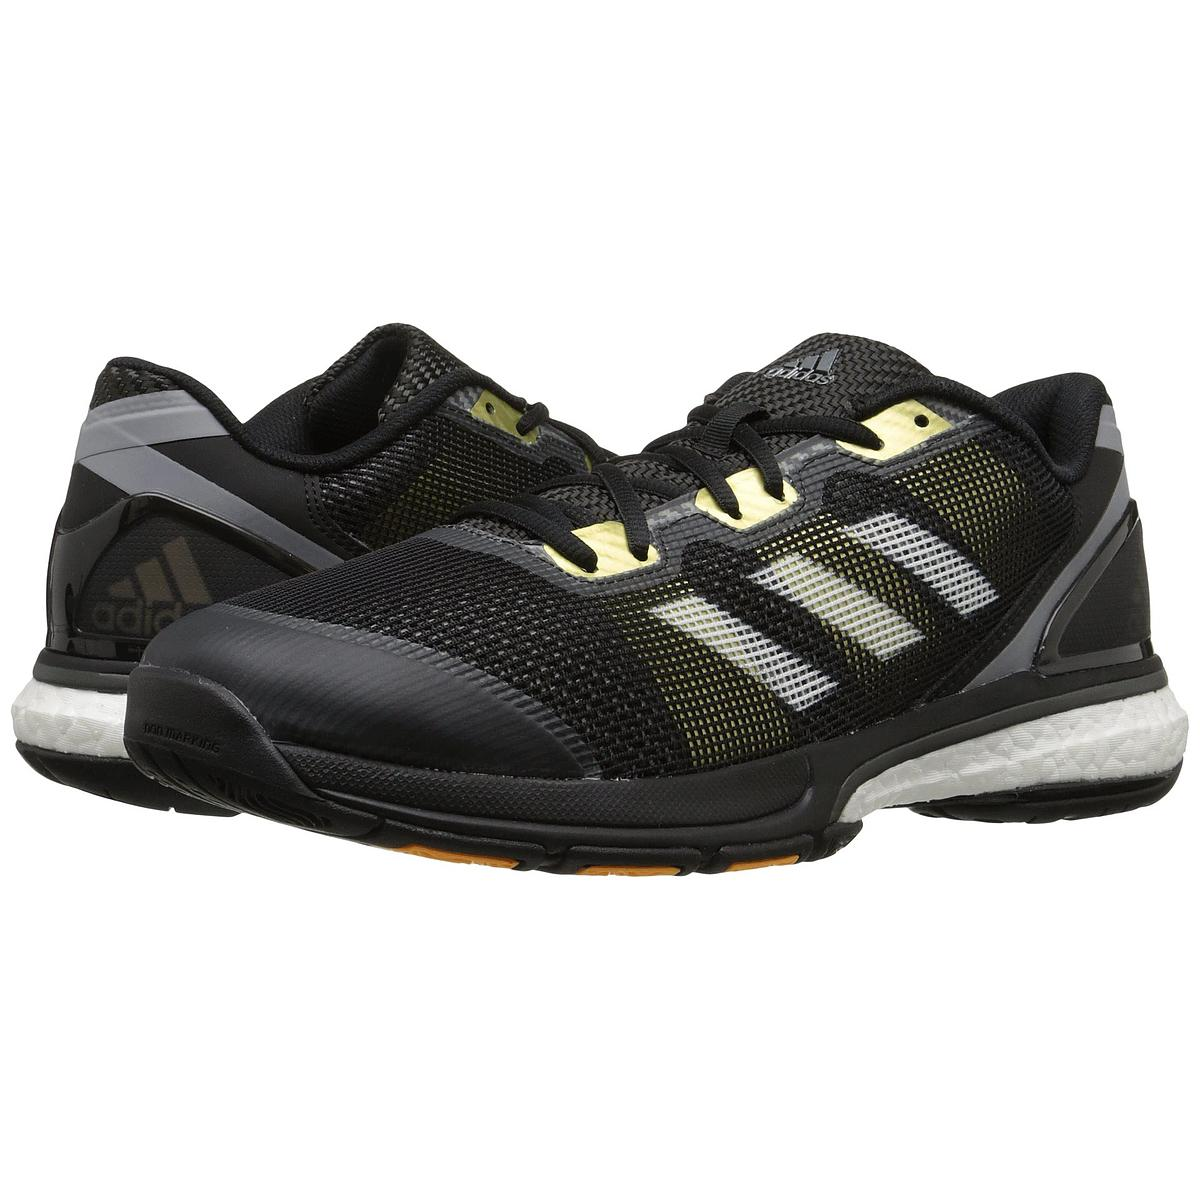 Adidas Stabil Boost II Court Shoes Squash Source